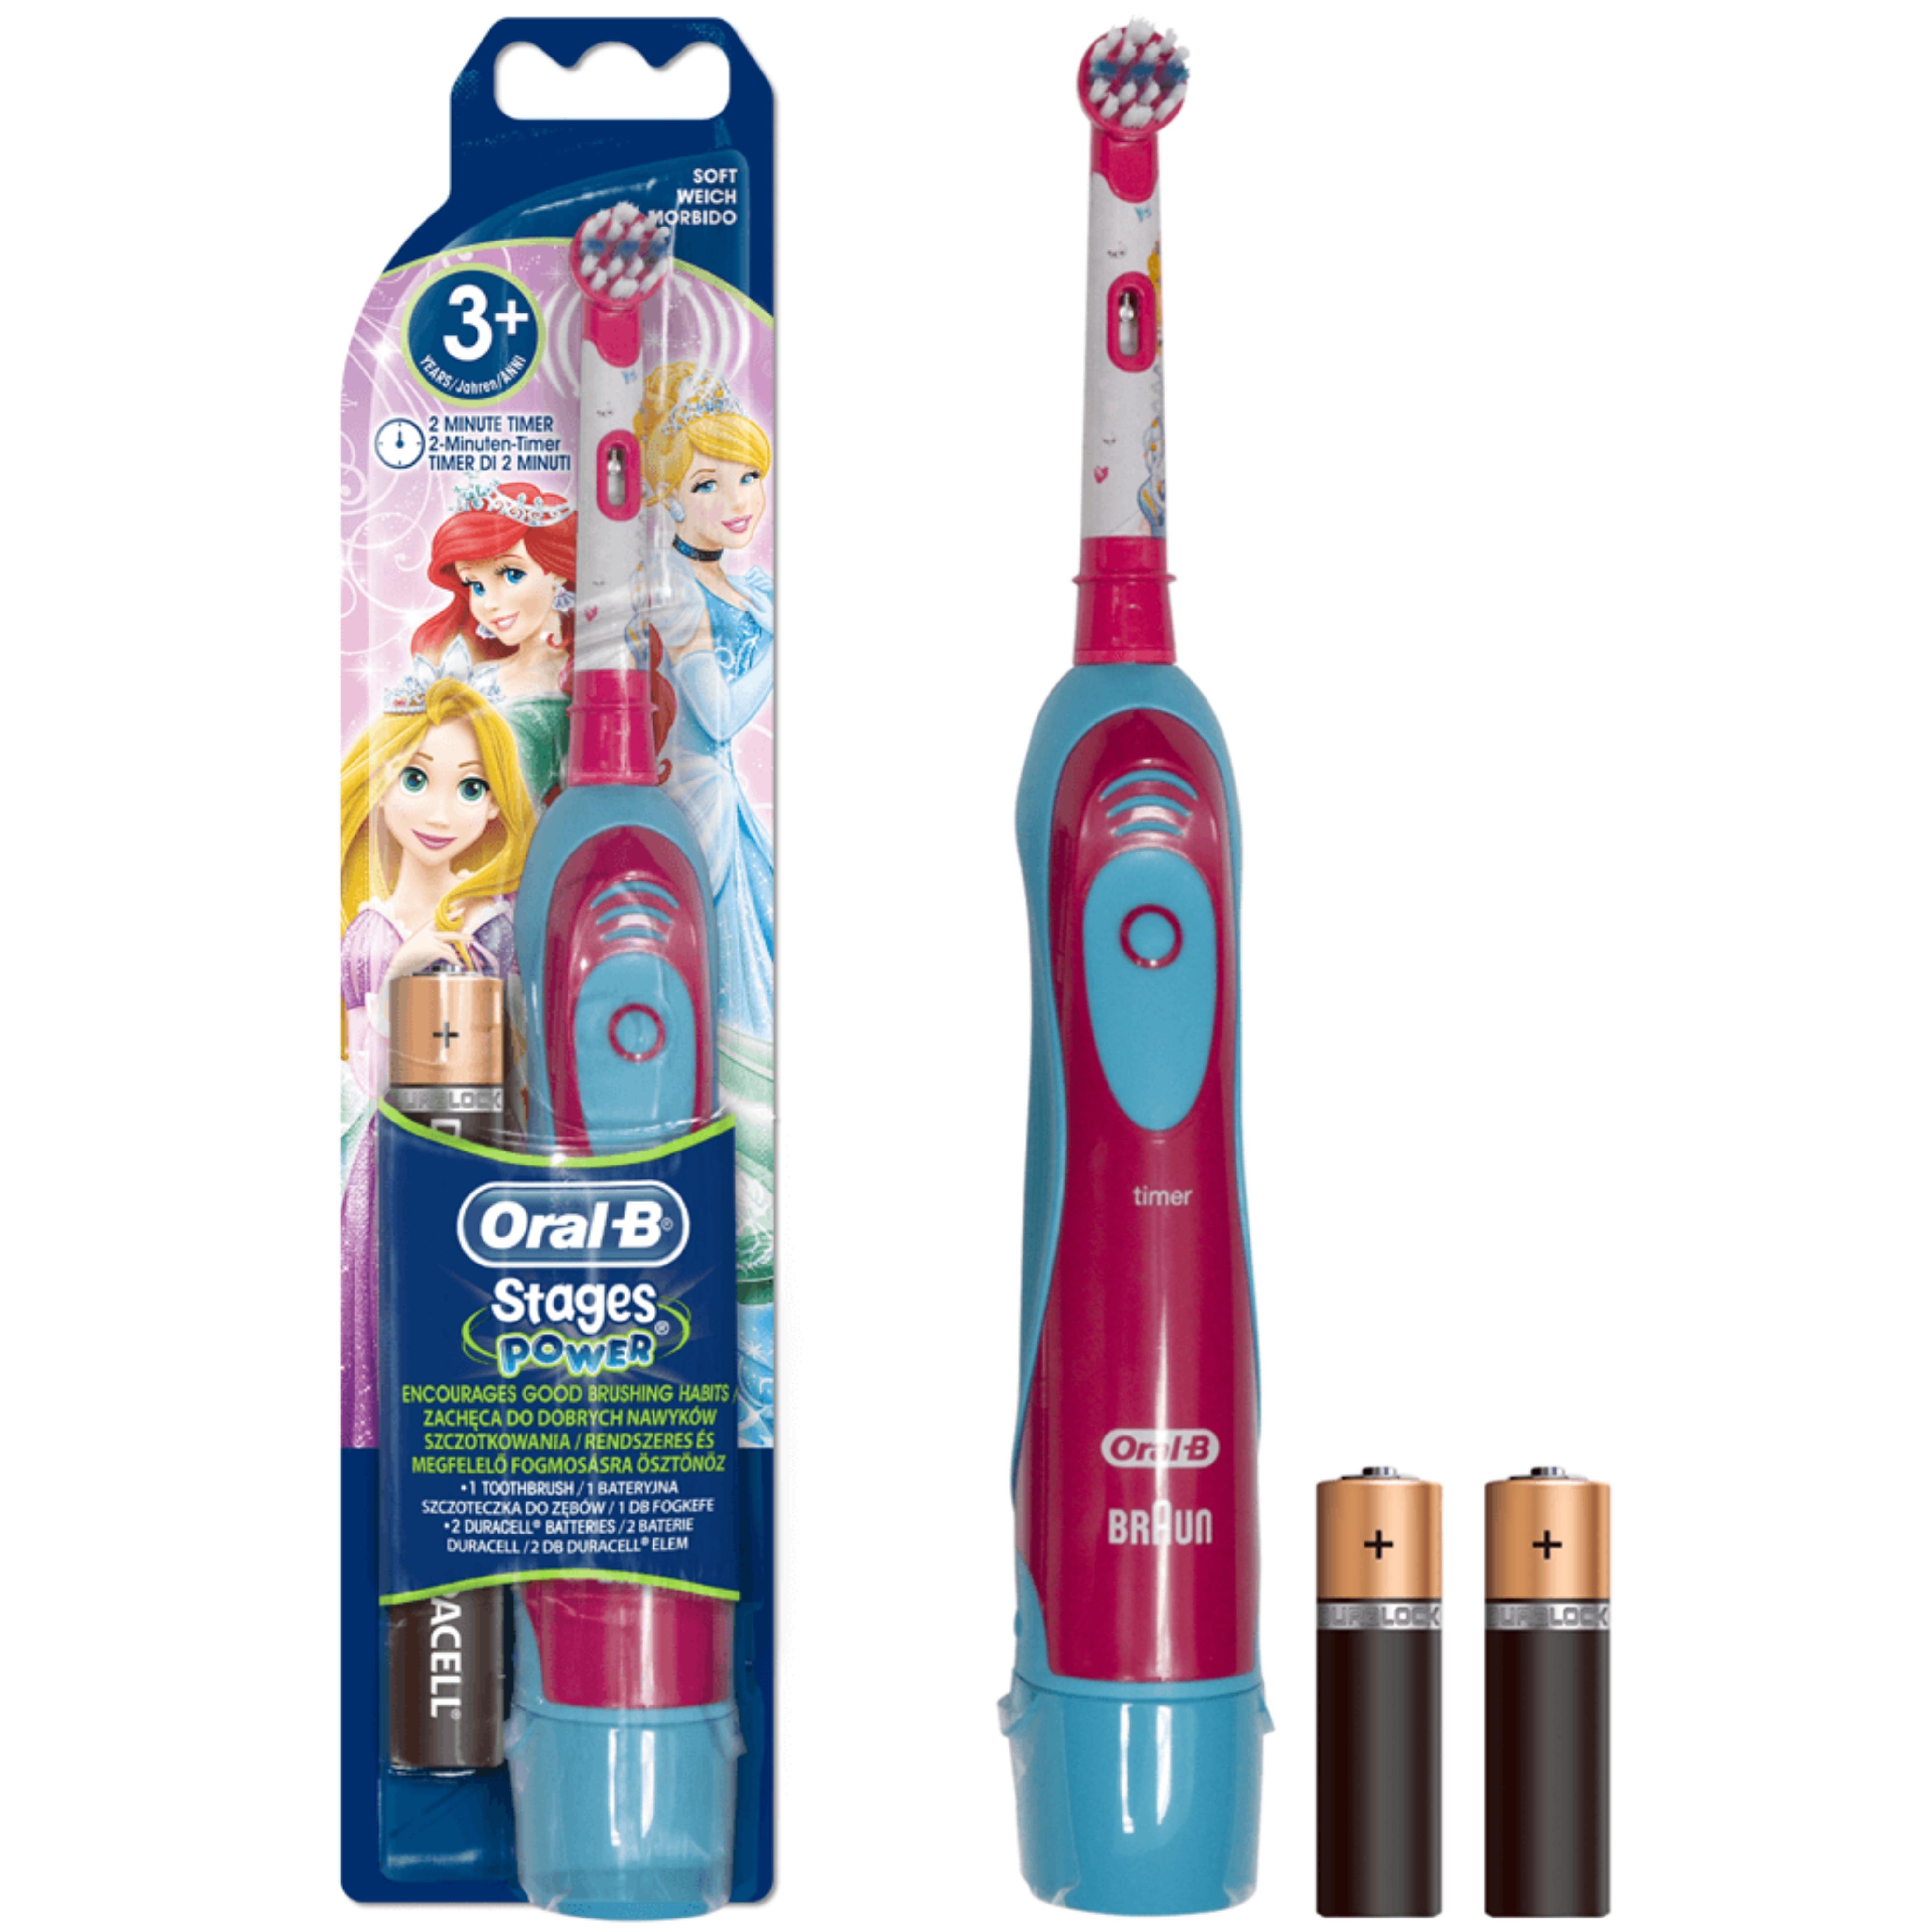 Oral-B Stages Power Kids Electric Toothbrush | Girls Oral | Disney Princess Edition